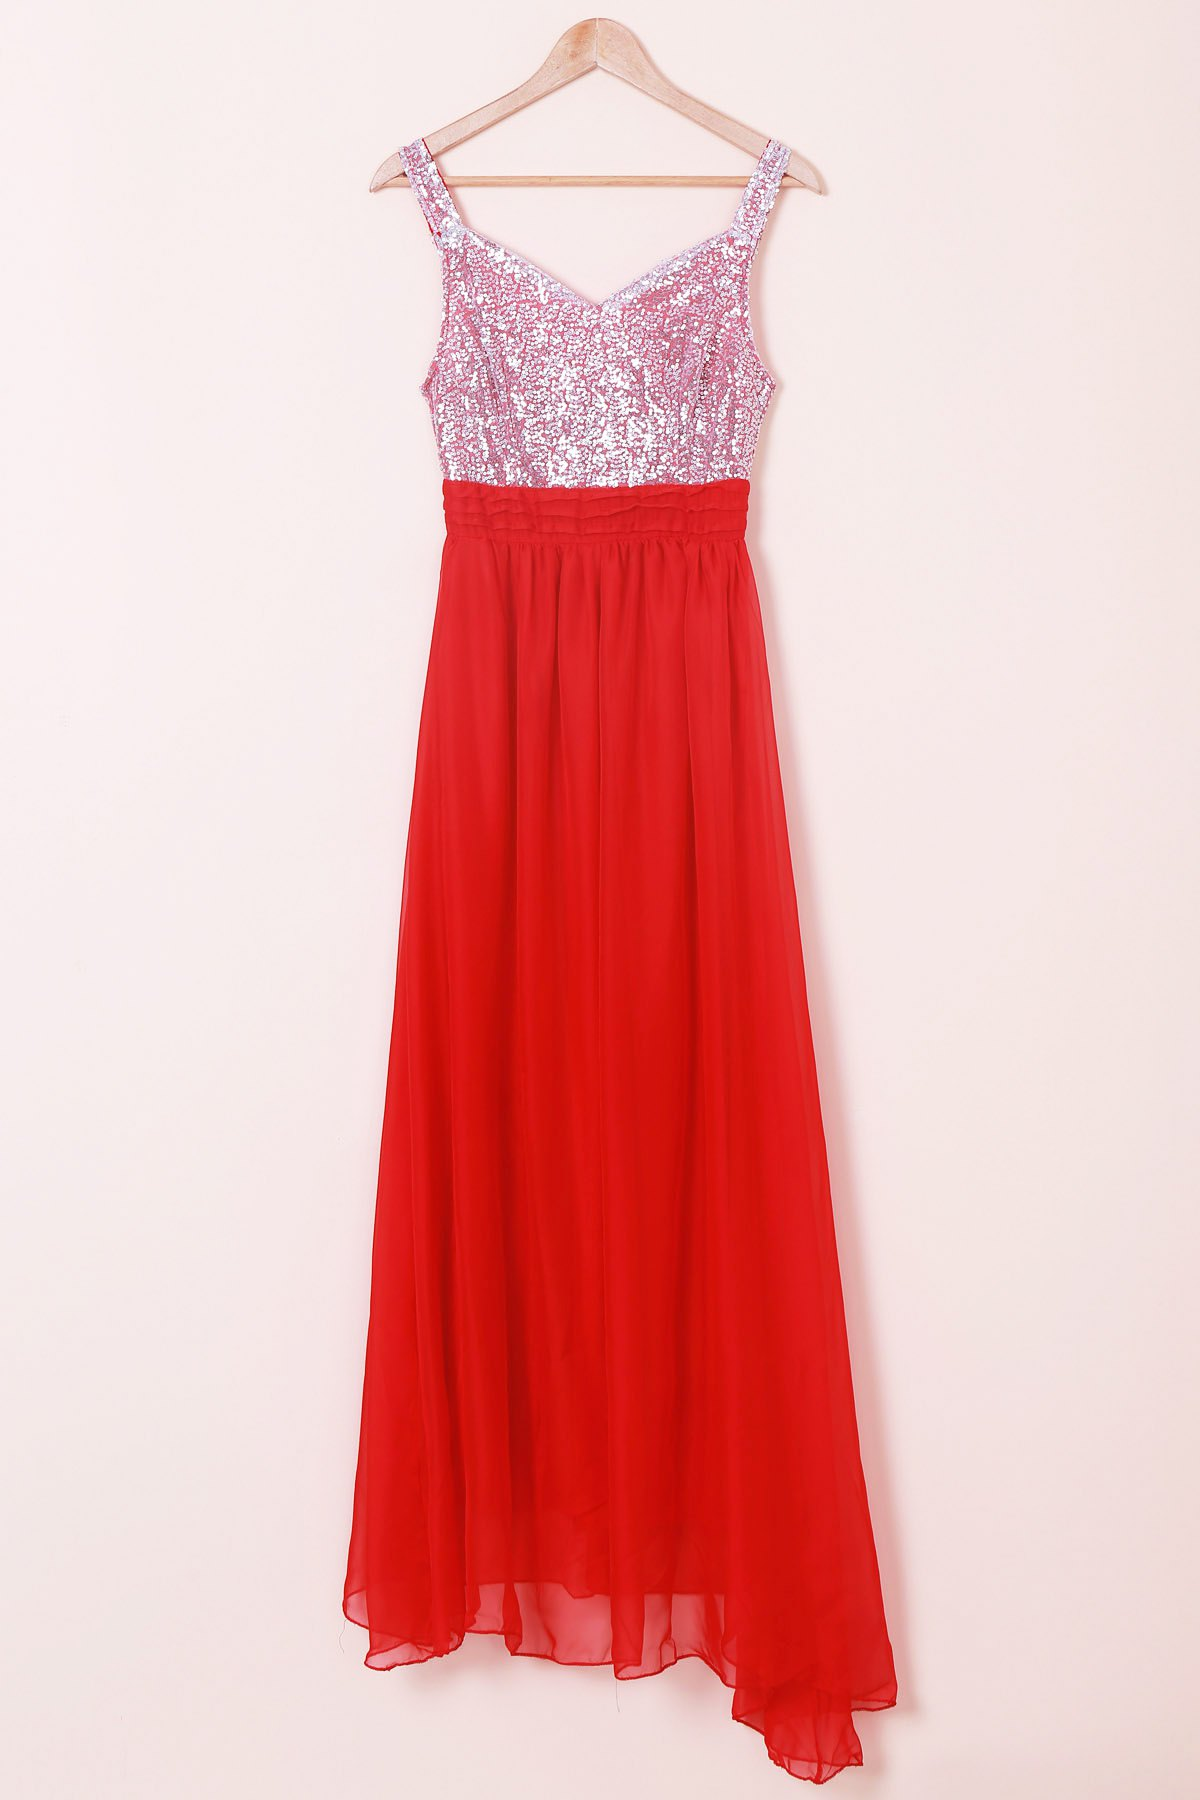 Elegant Sweetheart Neck Sleeveless Color Block Sequined Women's Dress - RED XL